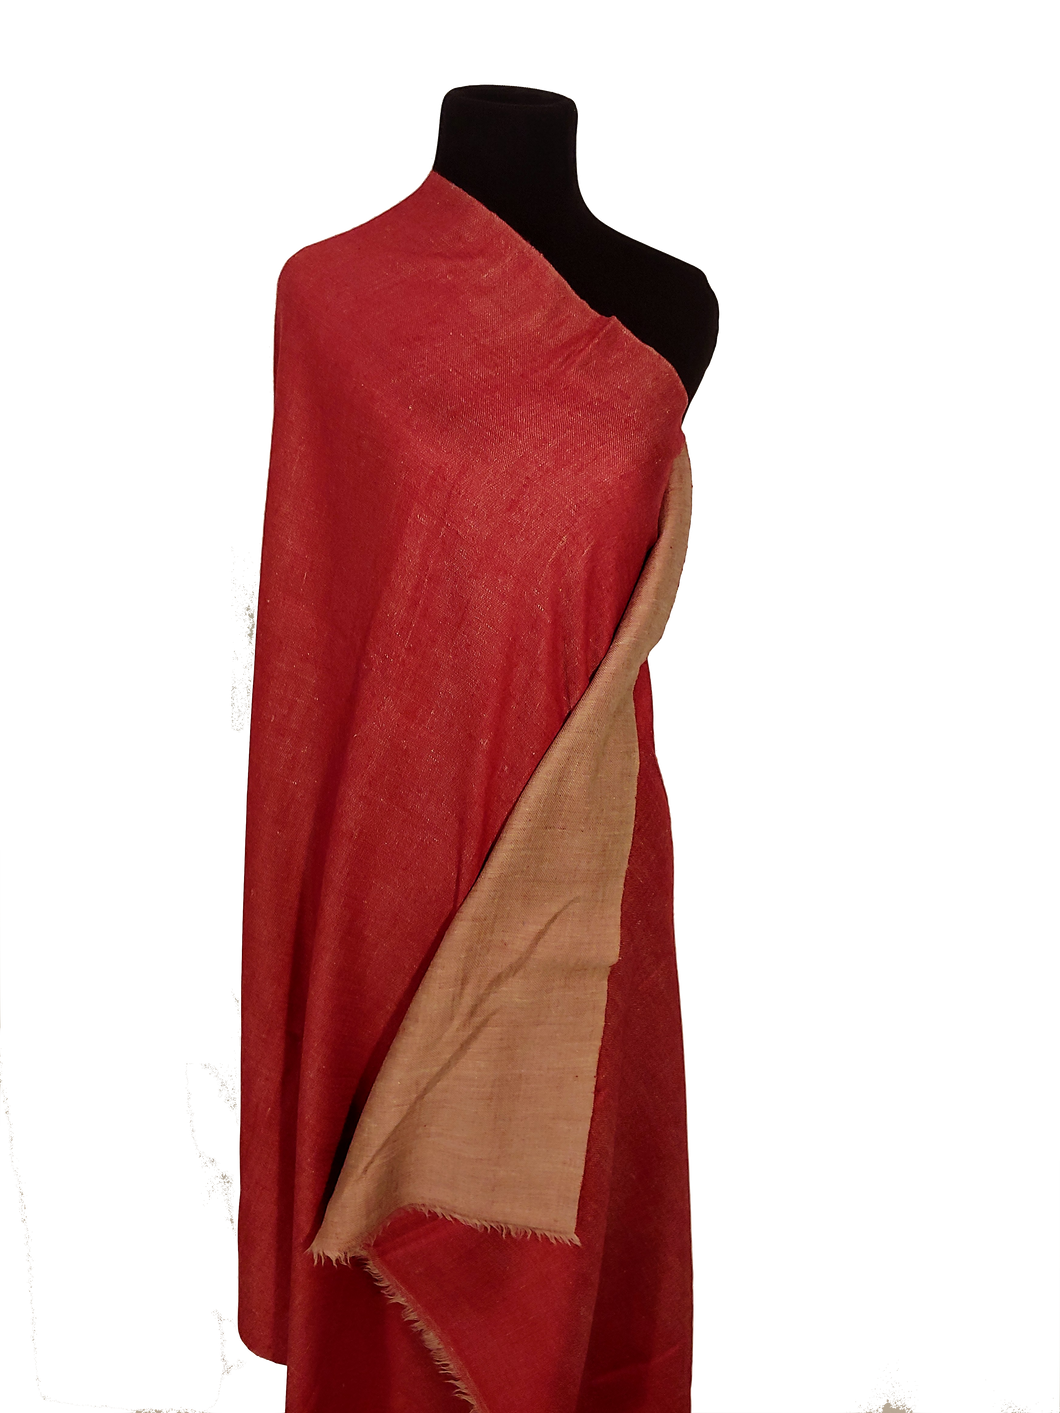 Dorukha Pashmina red and classic- (Double sided Pashmina)